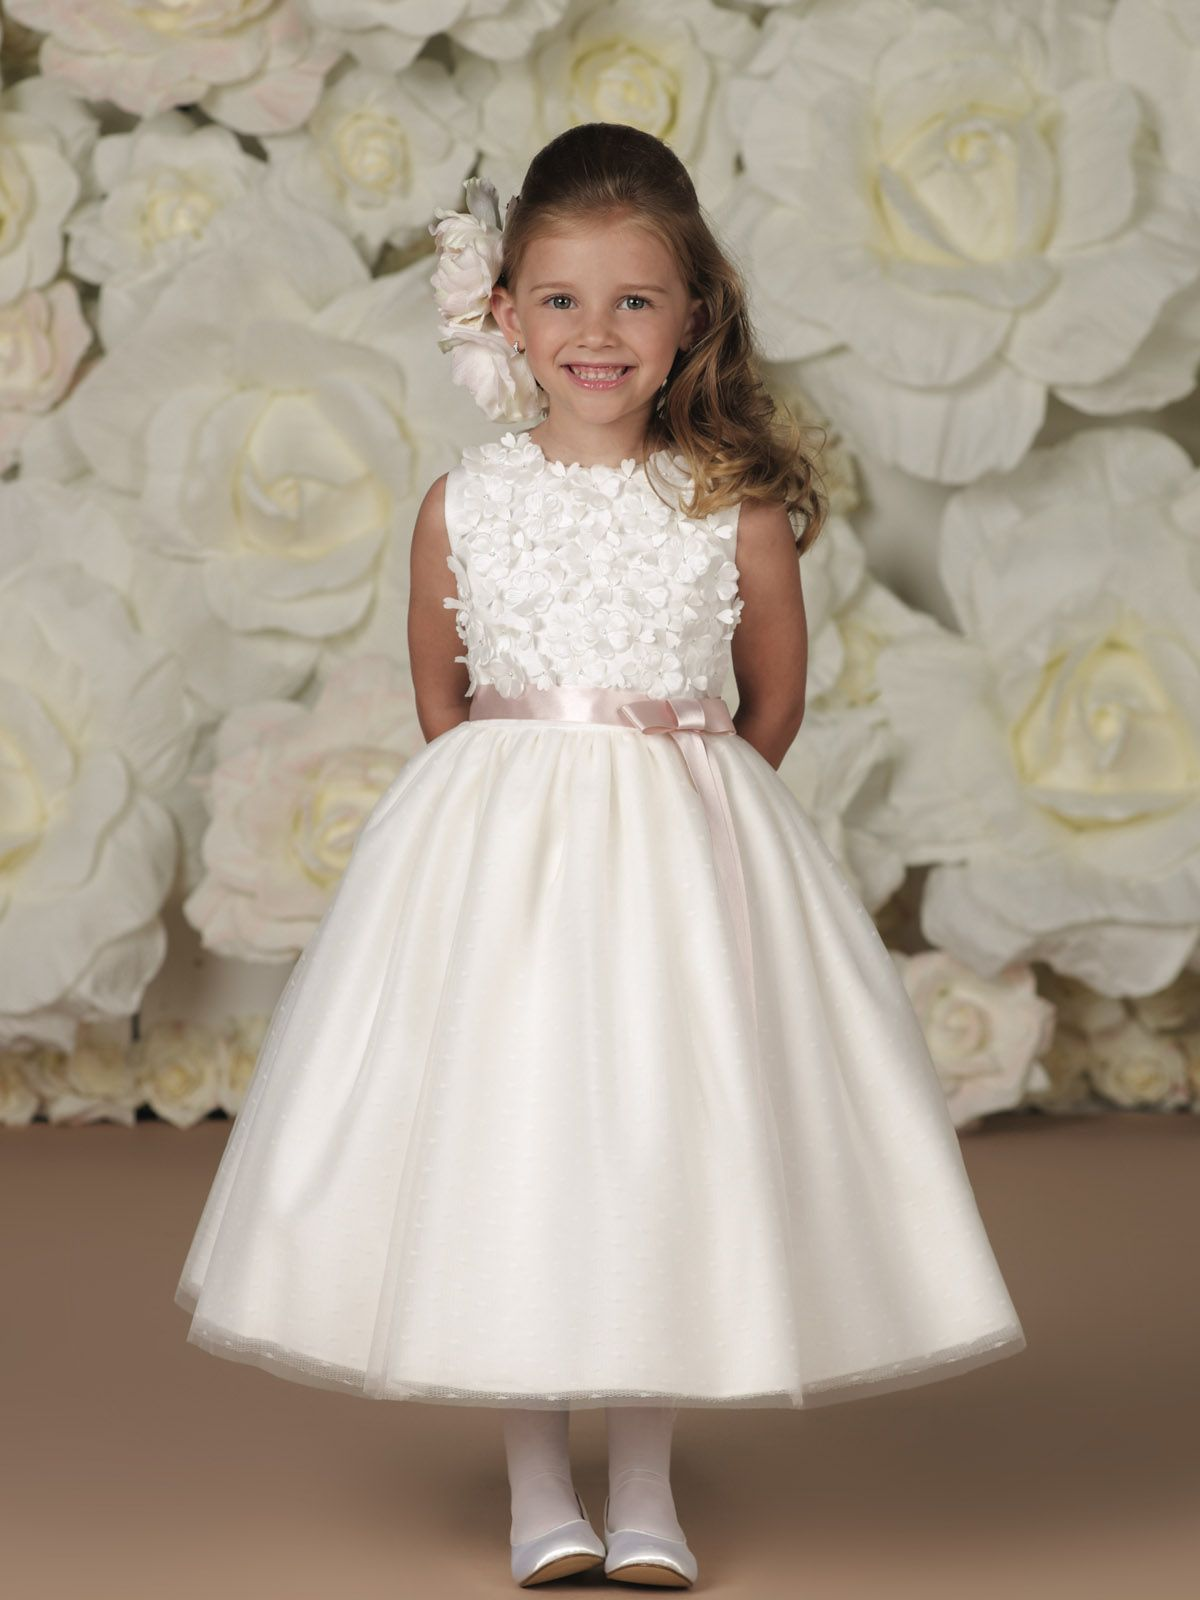 Sleeveless satin, tulle, point d'esprit tea-length A-line dress with jewel neckline, tulle over satin bodice fully covered with three-dimensional taffeta flowers, double faced satin ribbon waistband, tulle and point d'esprit overlay full dirndl skirt.